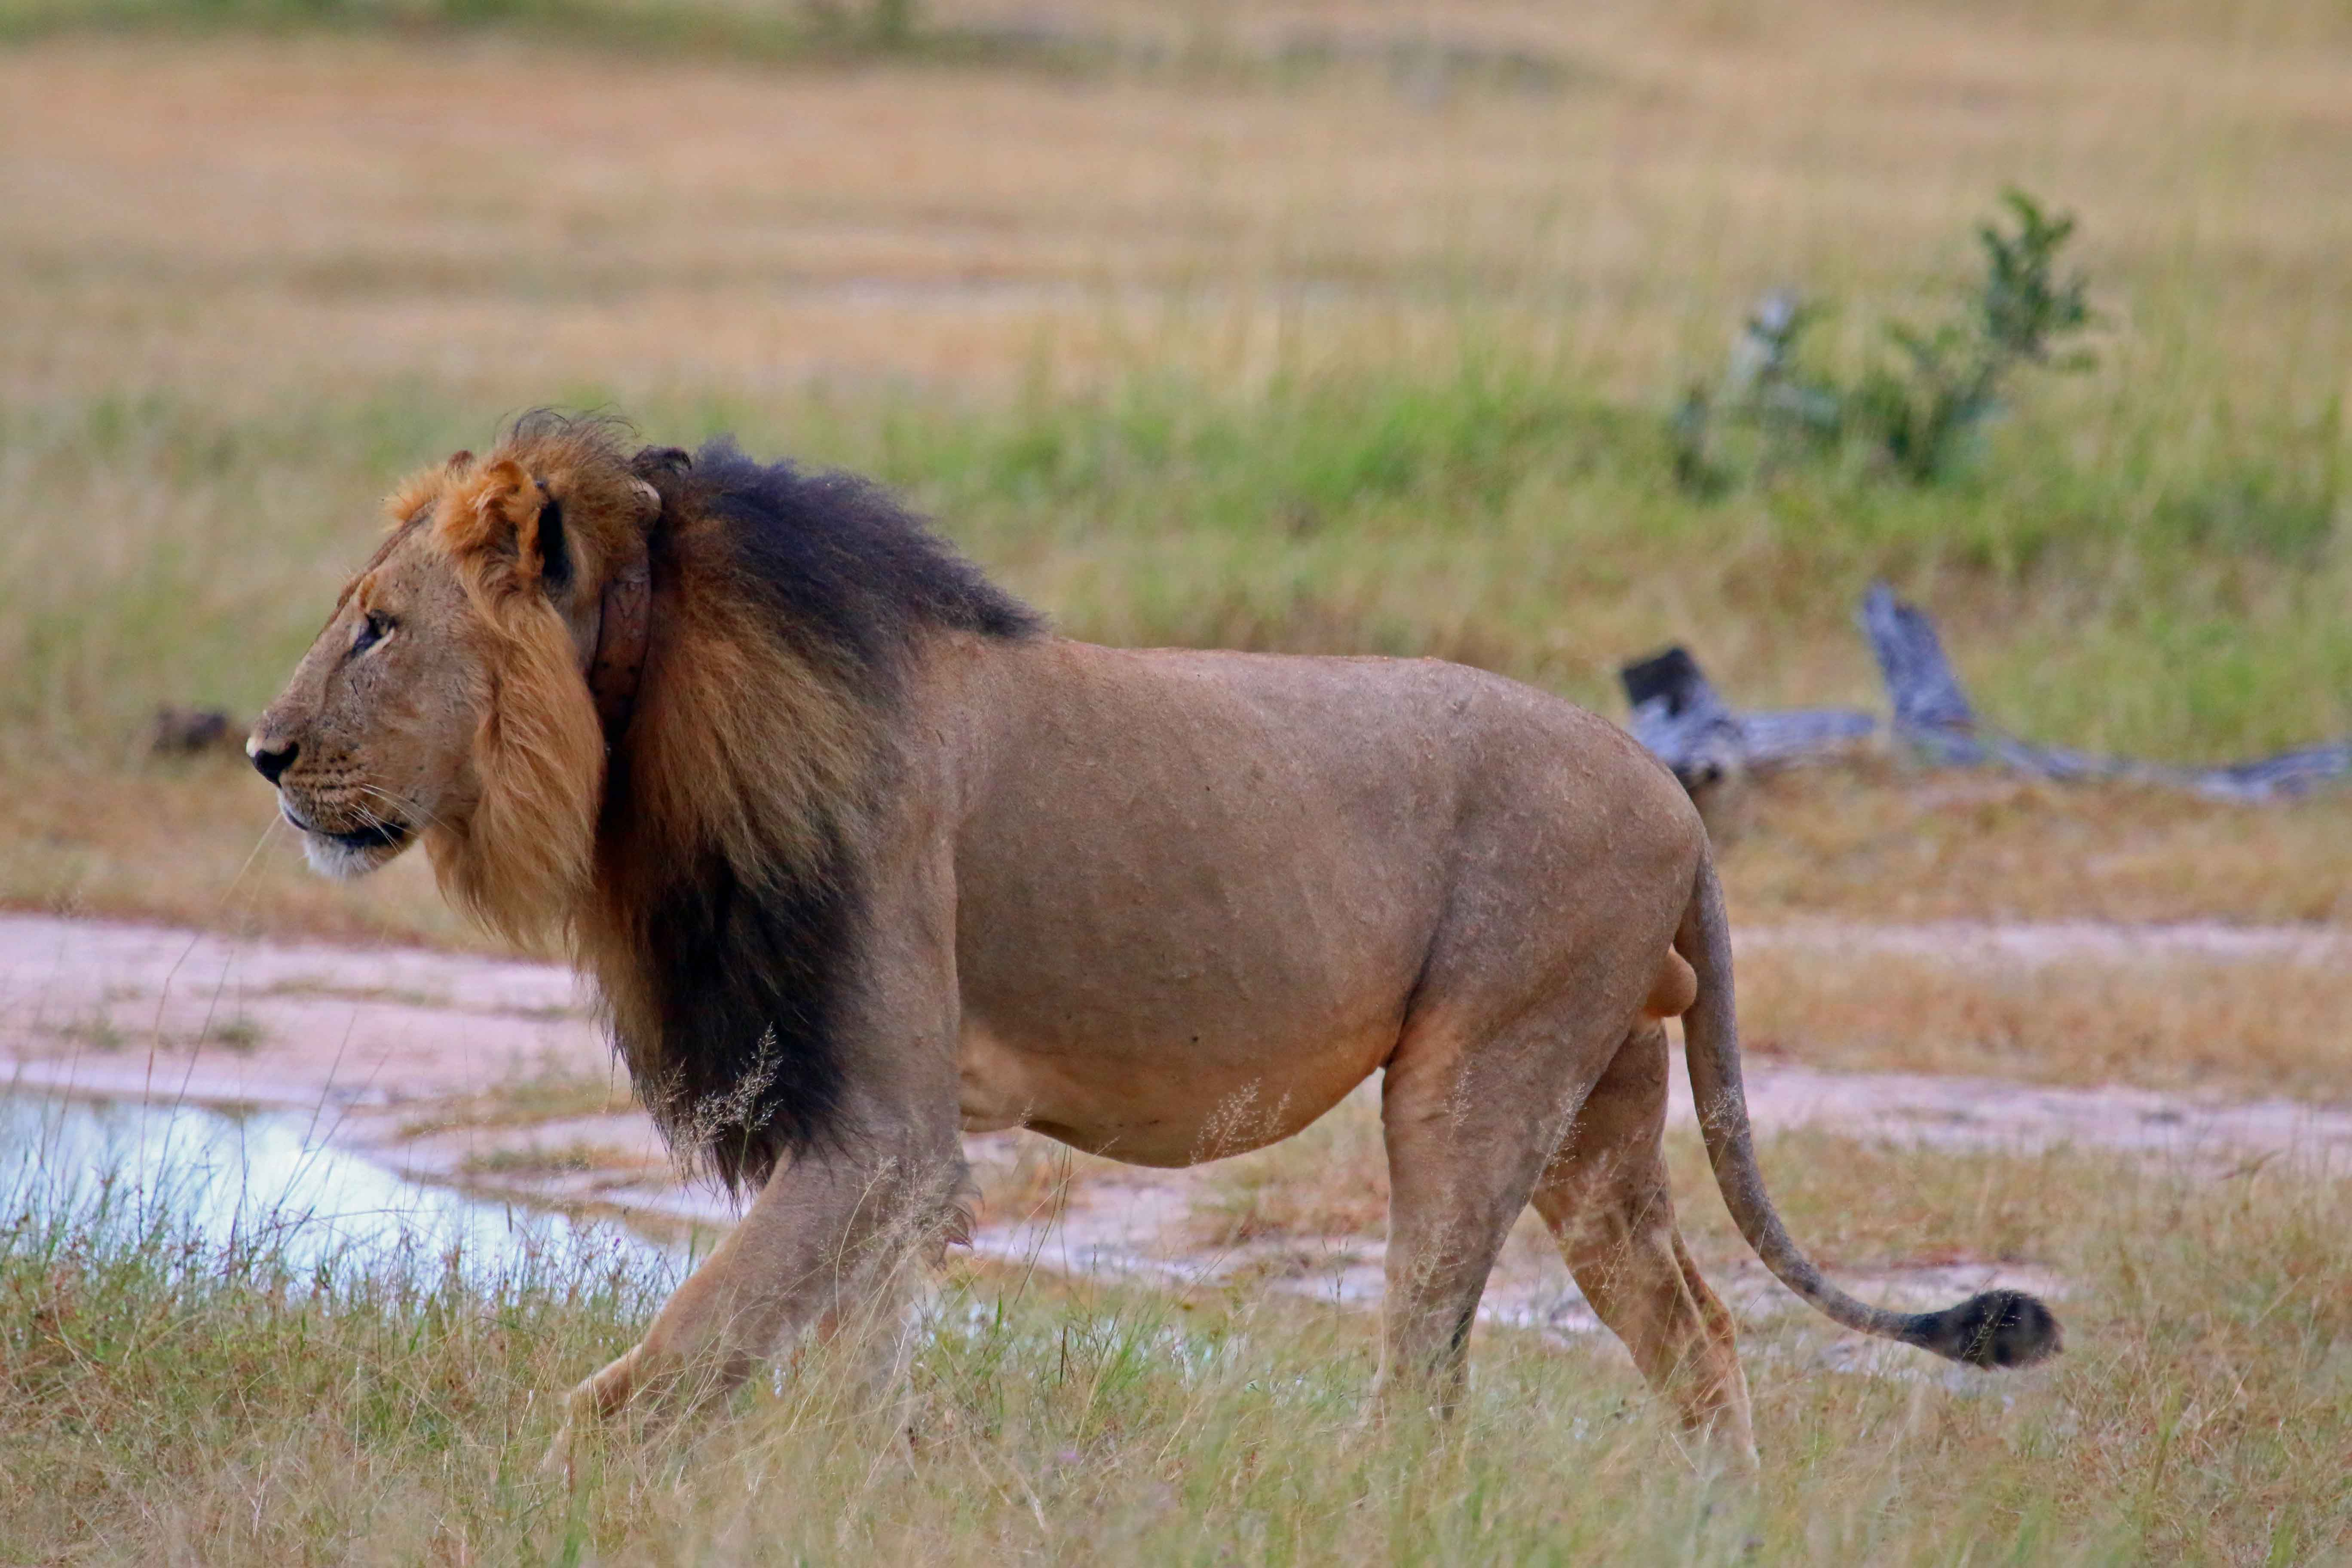 Cecil patrolling his territory, on safari in April 2014